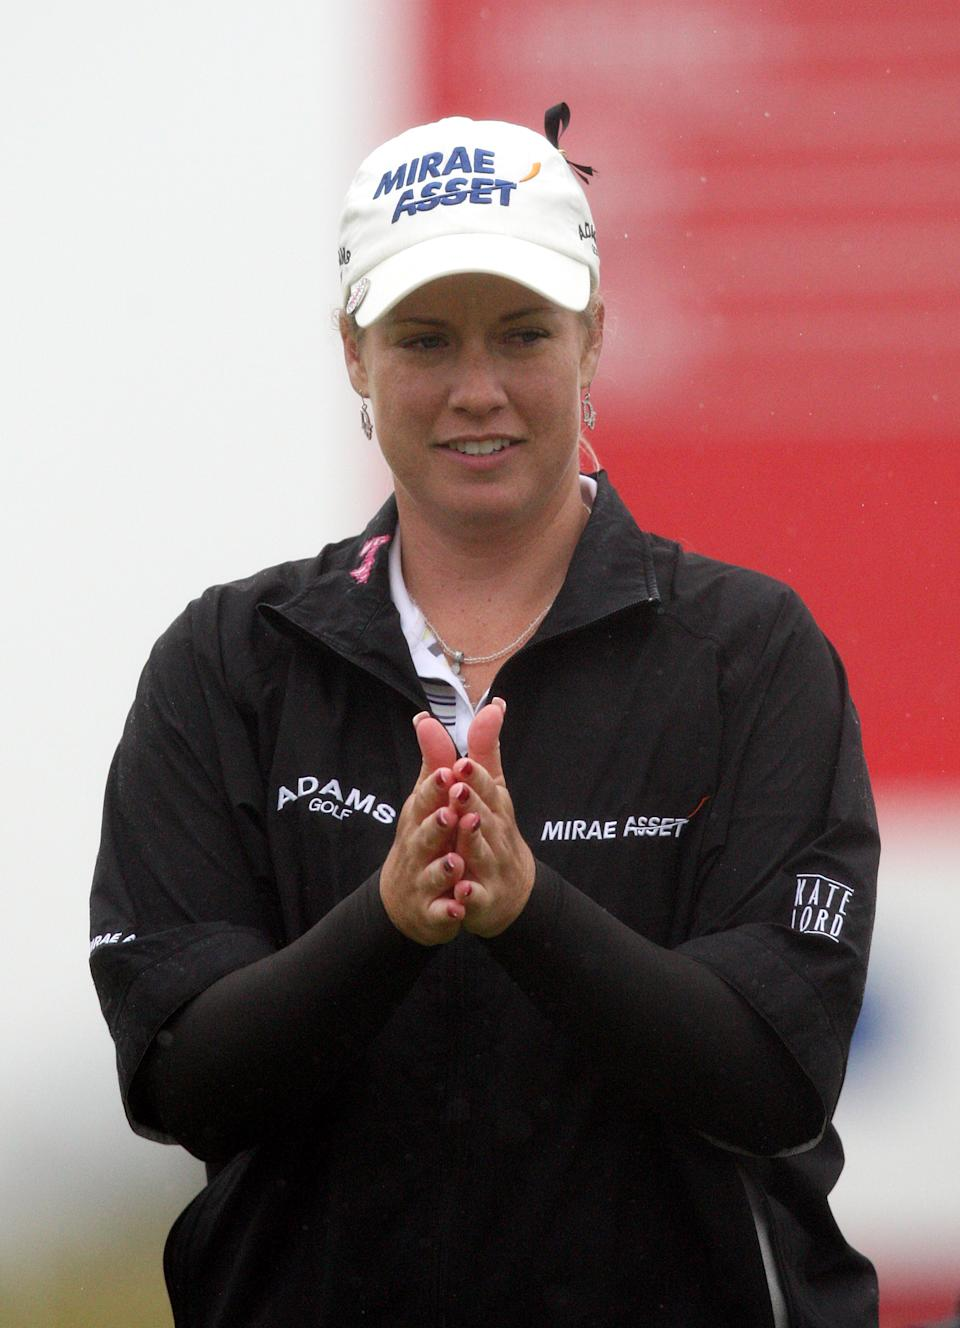 Brittany Liniciome of the US, reacts after finishing the first round of the Women's British Open at Carnoustie Golf Club, Carnoustie, Scotland, Thursday July 28, 2011.(AP Photo/Scott Heppell)